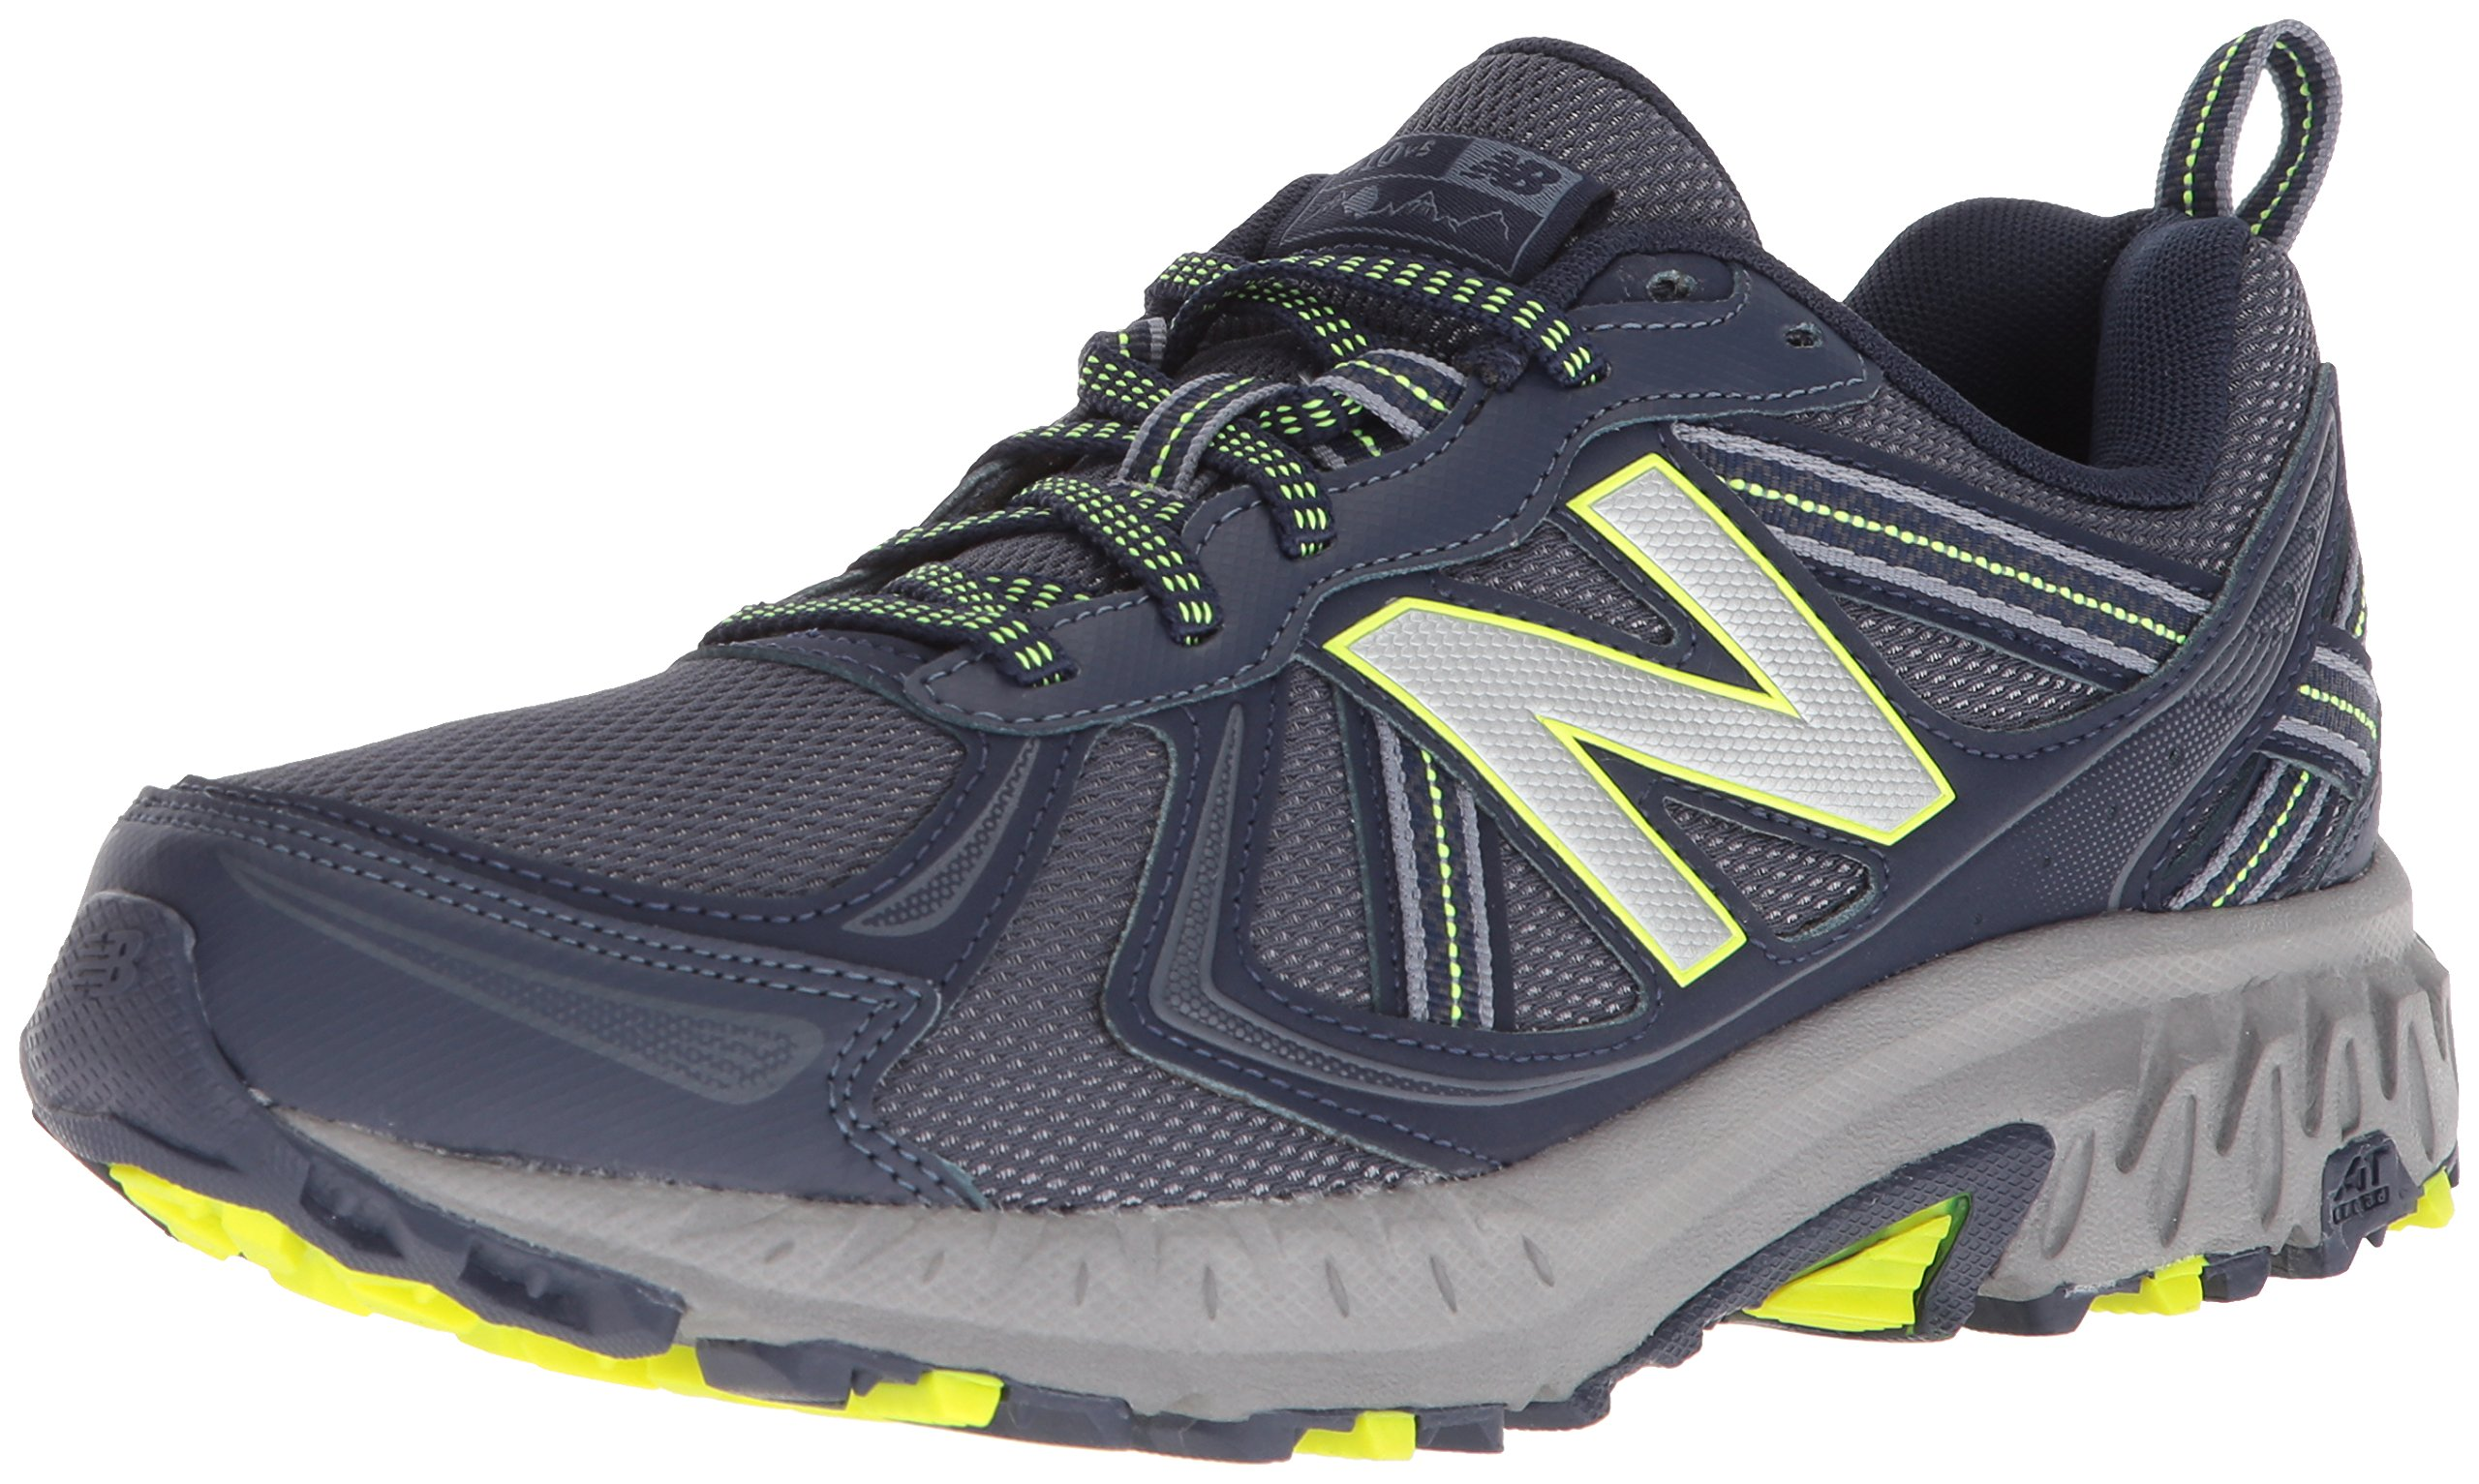 New Balance Men's MT410v5 Cushioning Trail Running Shoe, Navy/Yelow, 10.5 D US by New Balance